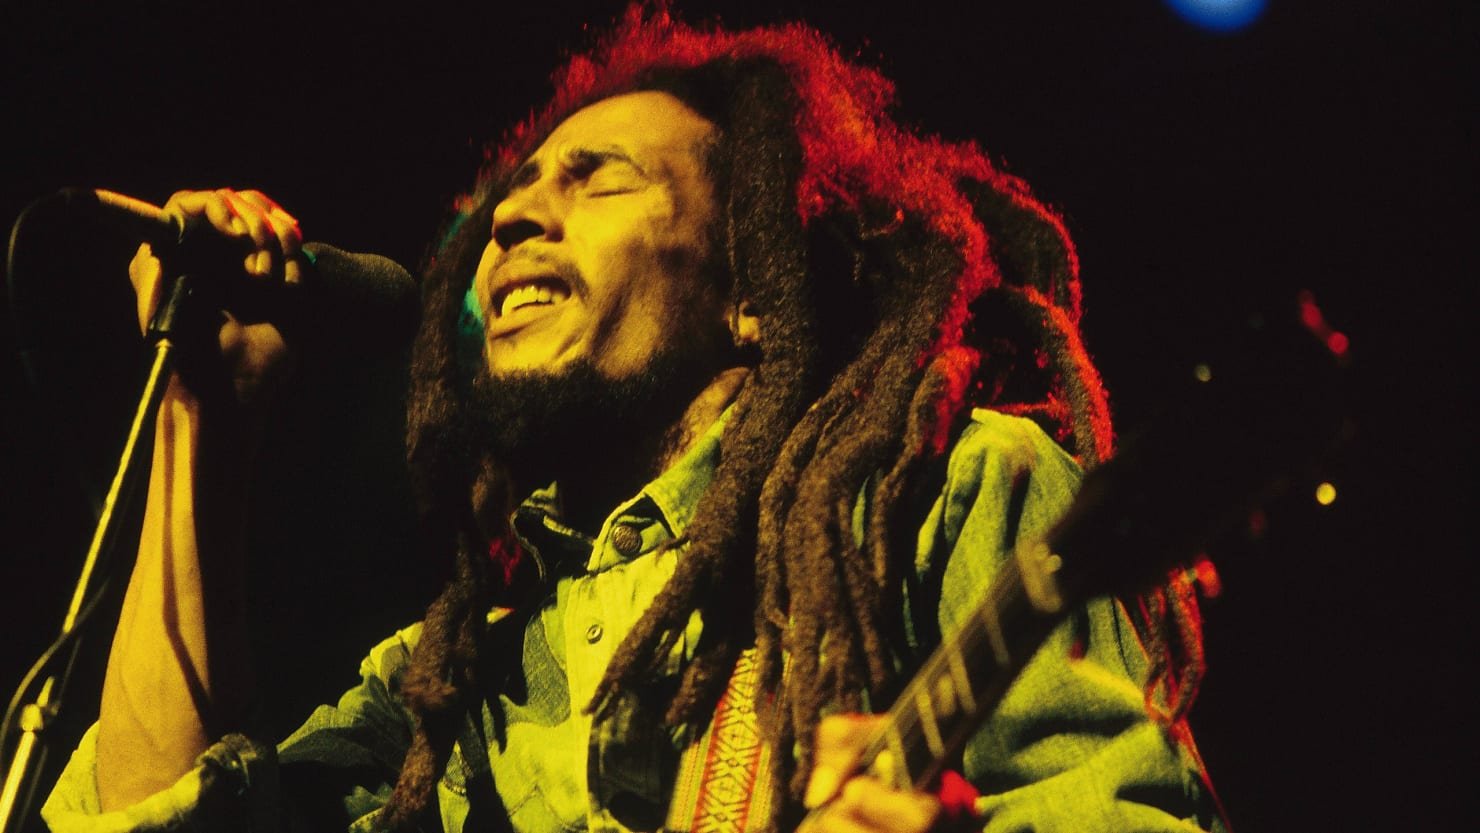 'Exodus' at 40: Bob Marley's Plea for Peace and Black Liberation After Facing Death